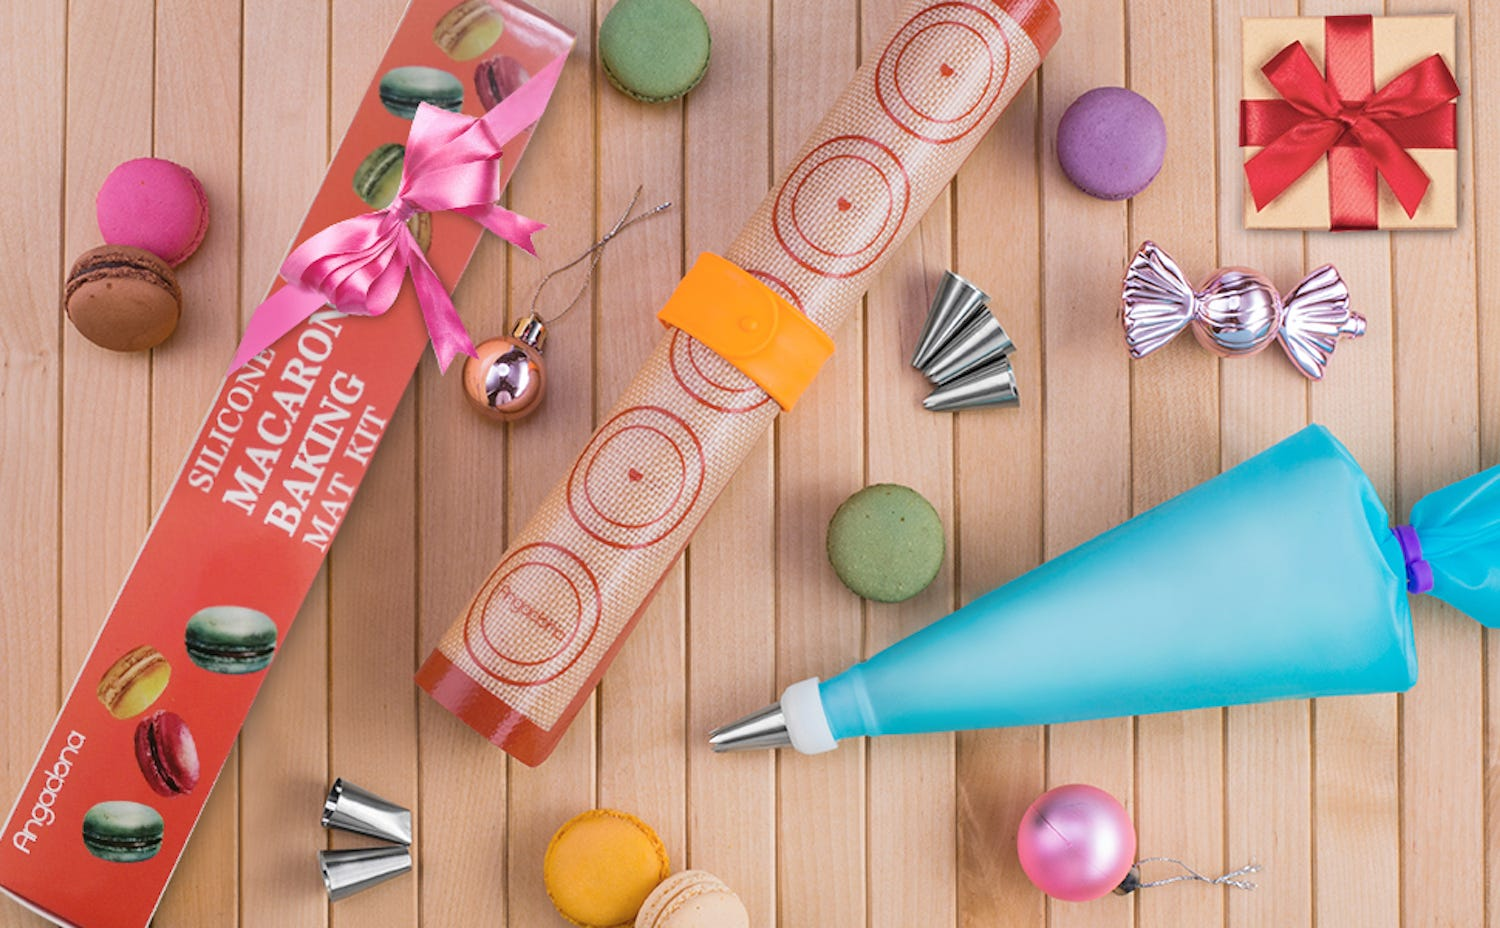 A macaron baking mat, a pastry bag with tip, and several colorful macarons on a wood surface